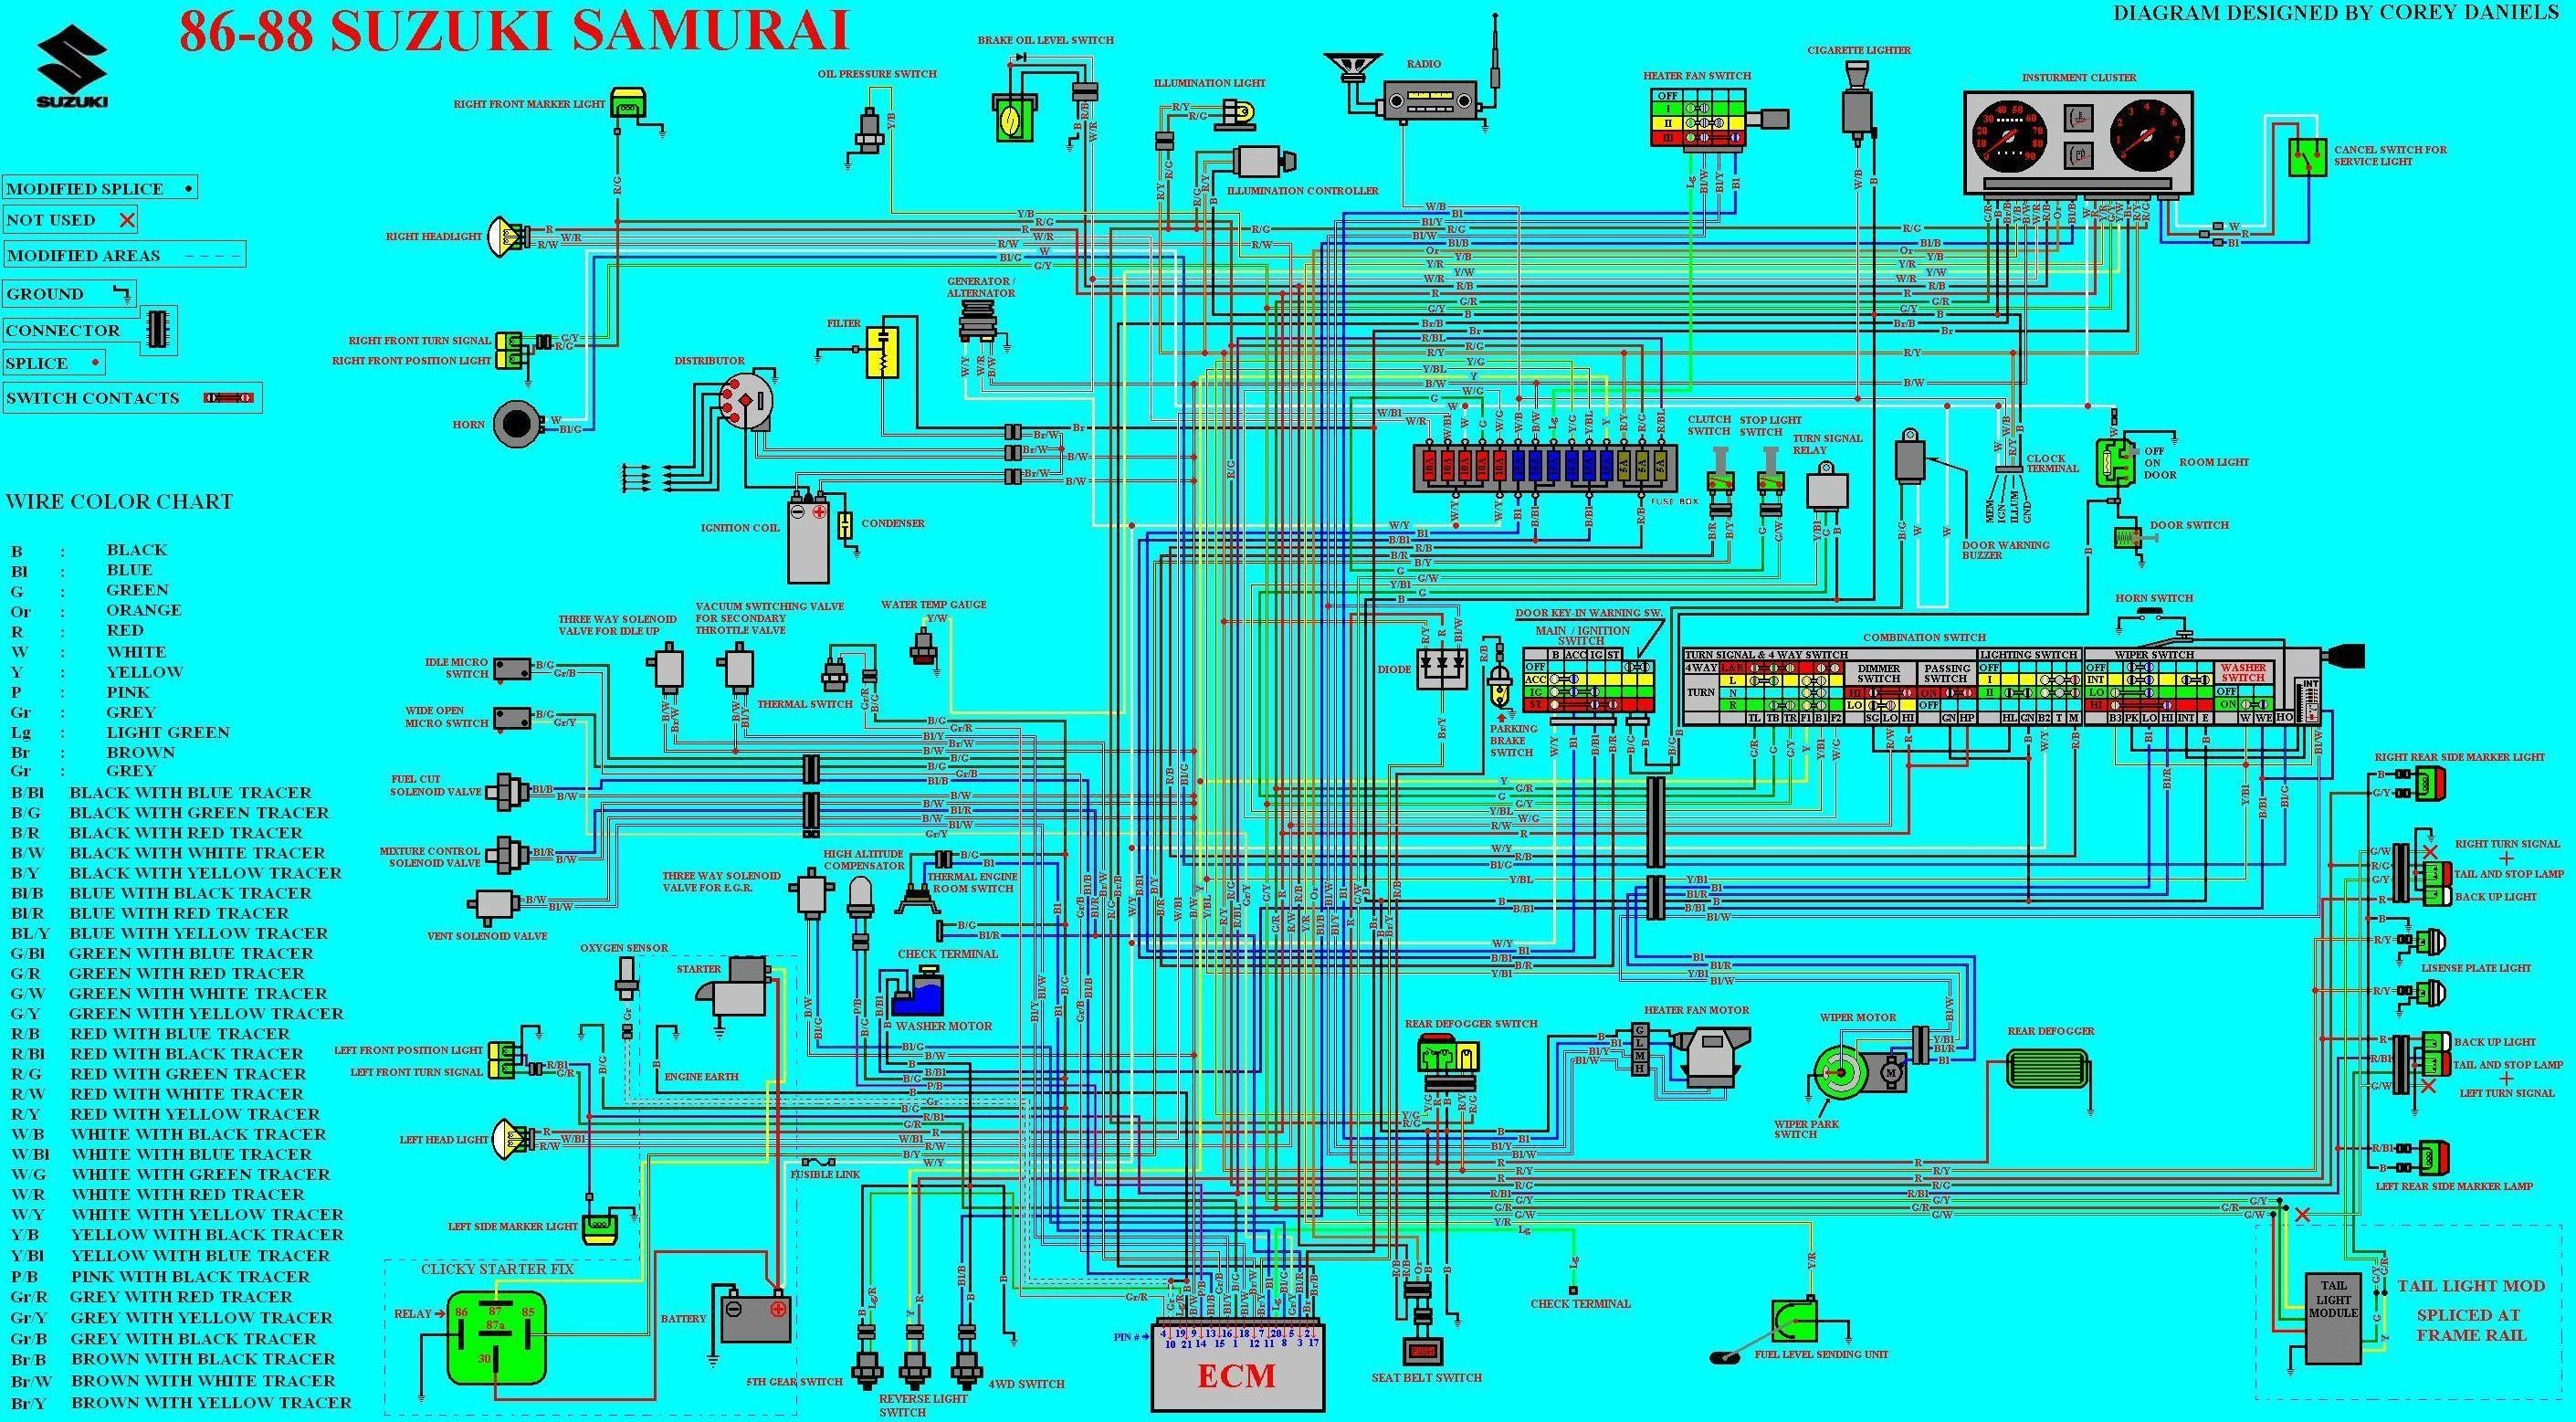 hight resolution of unique vn alternator wiring diagram diagrams digramssample diagramimages wiringdiagramsample wiringdiagram